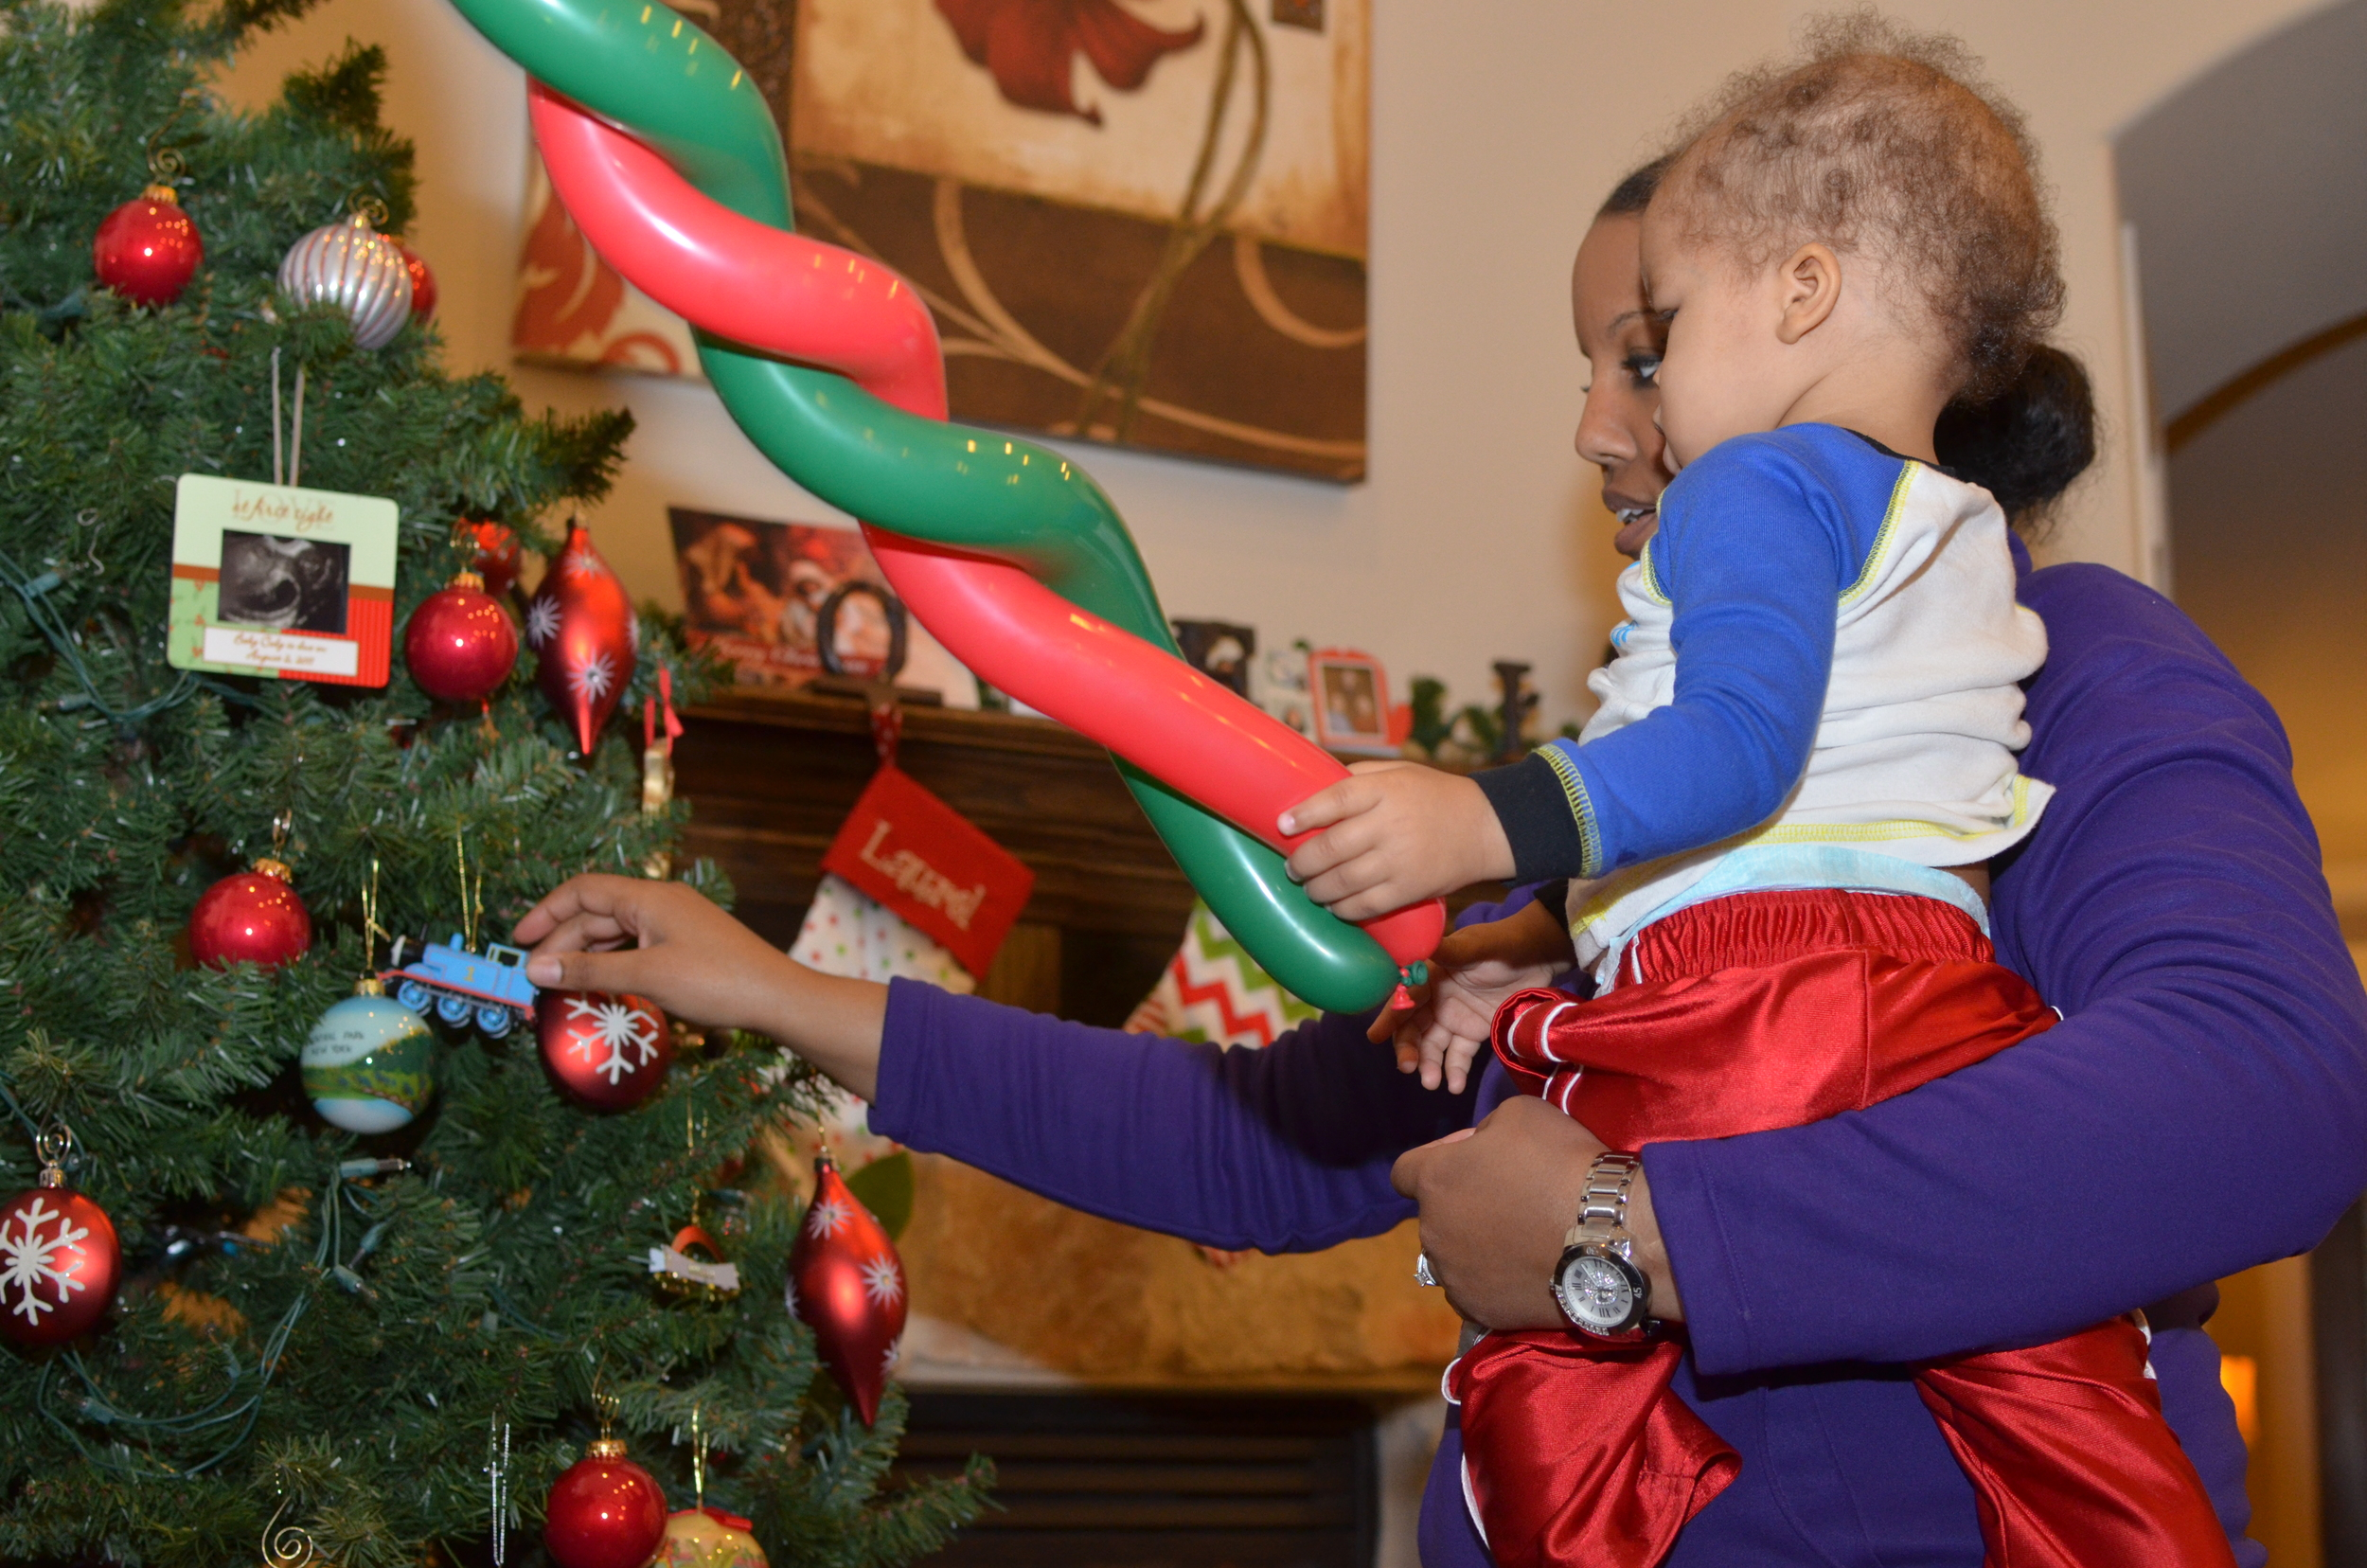 Day 136: Elliott puts his ornament on the tree with some assistance from mom